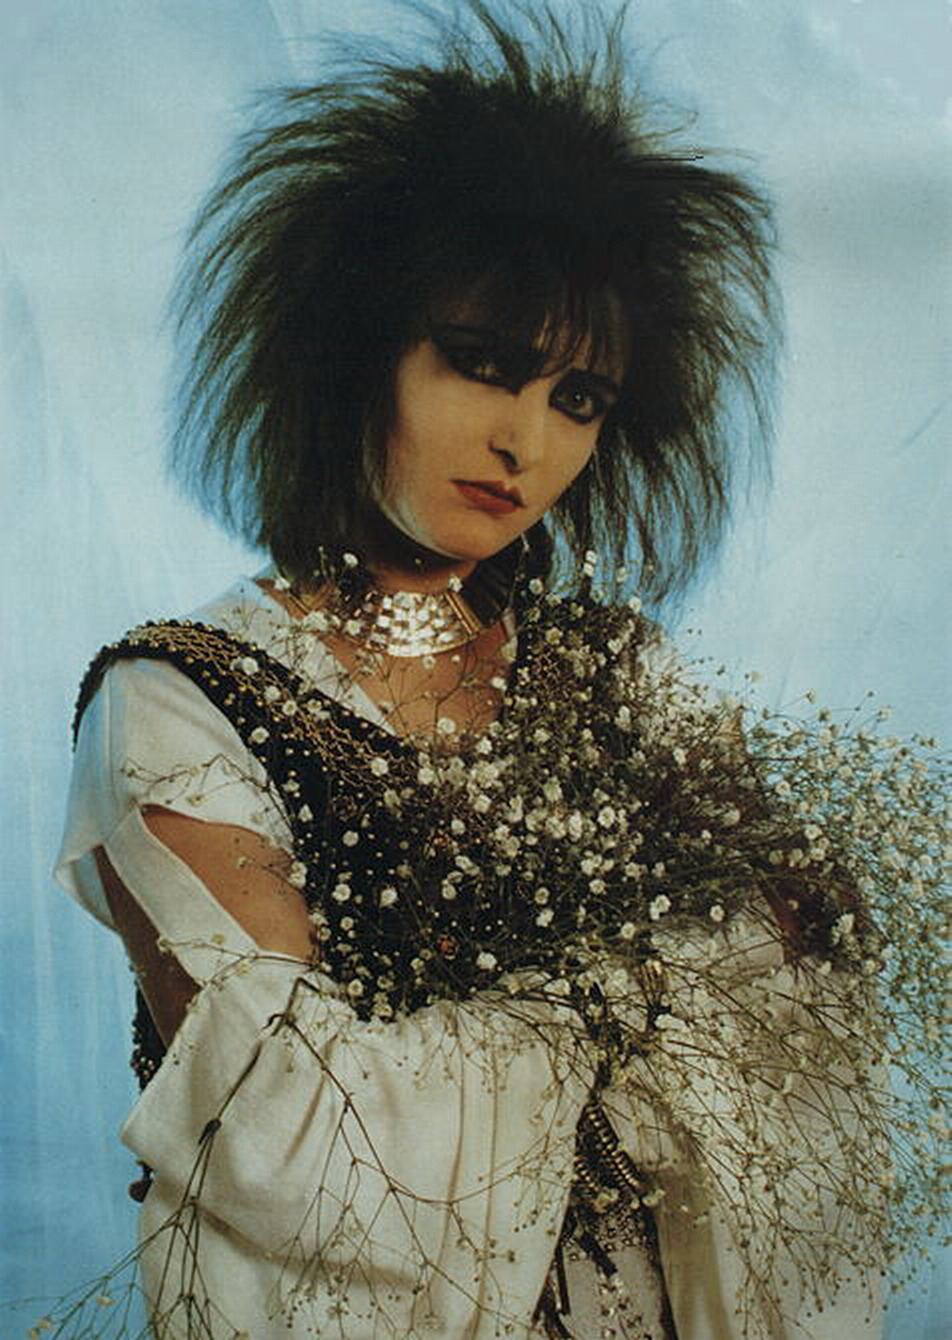 the special edition siouxsie sioux humus